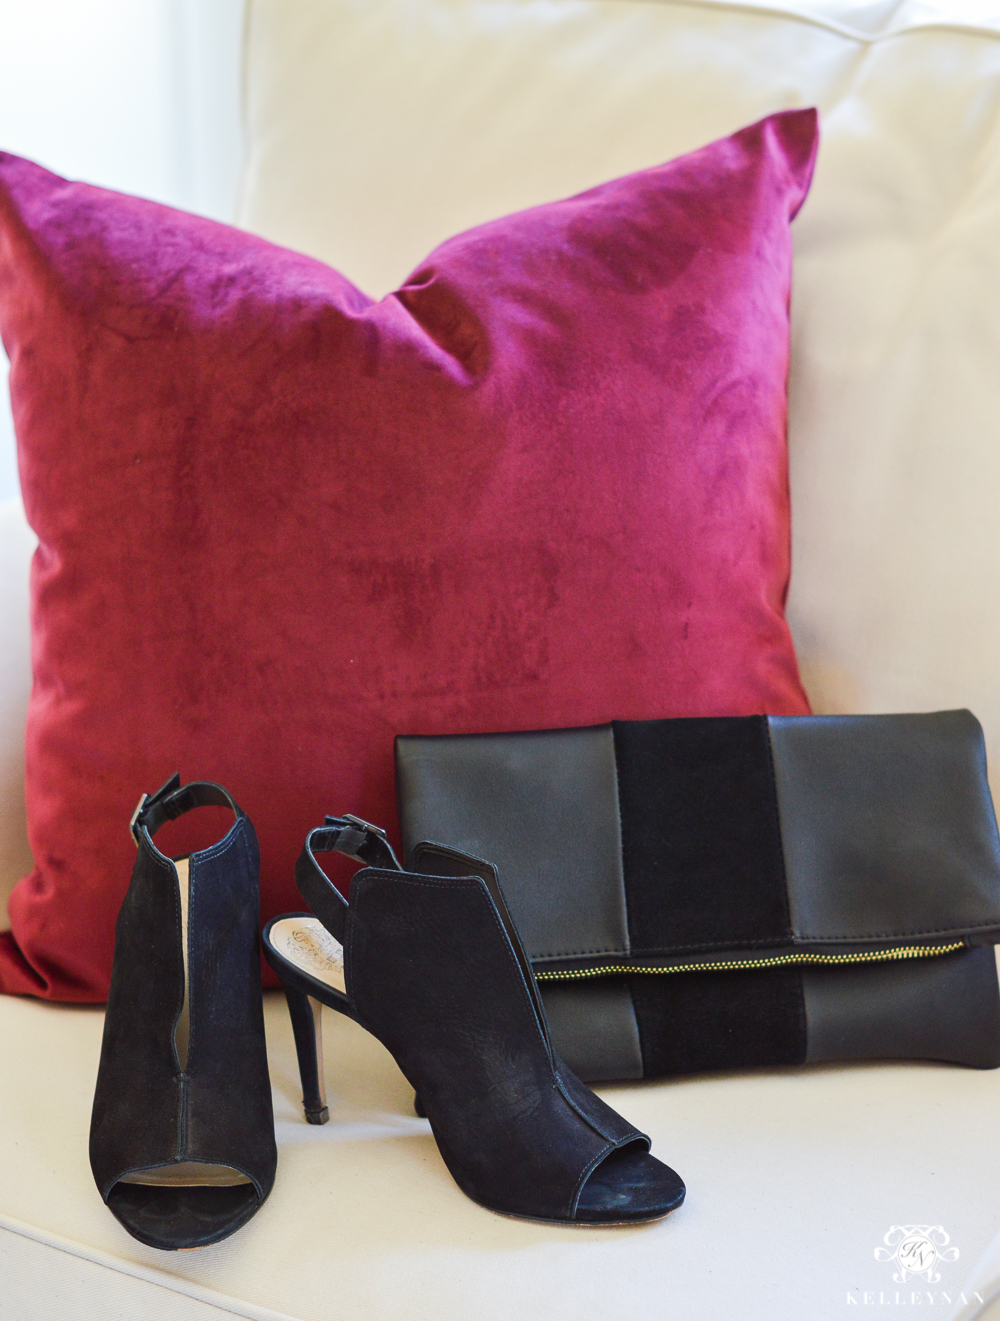 Favorite shoes and clutch and pillow for the holidays